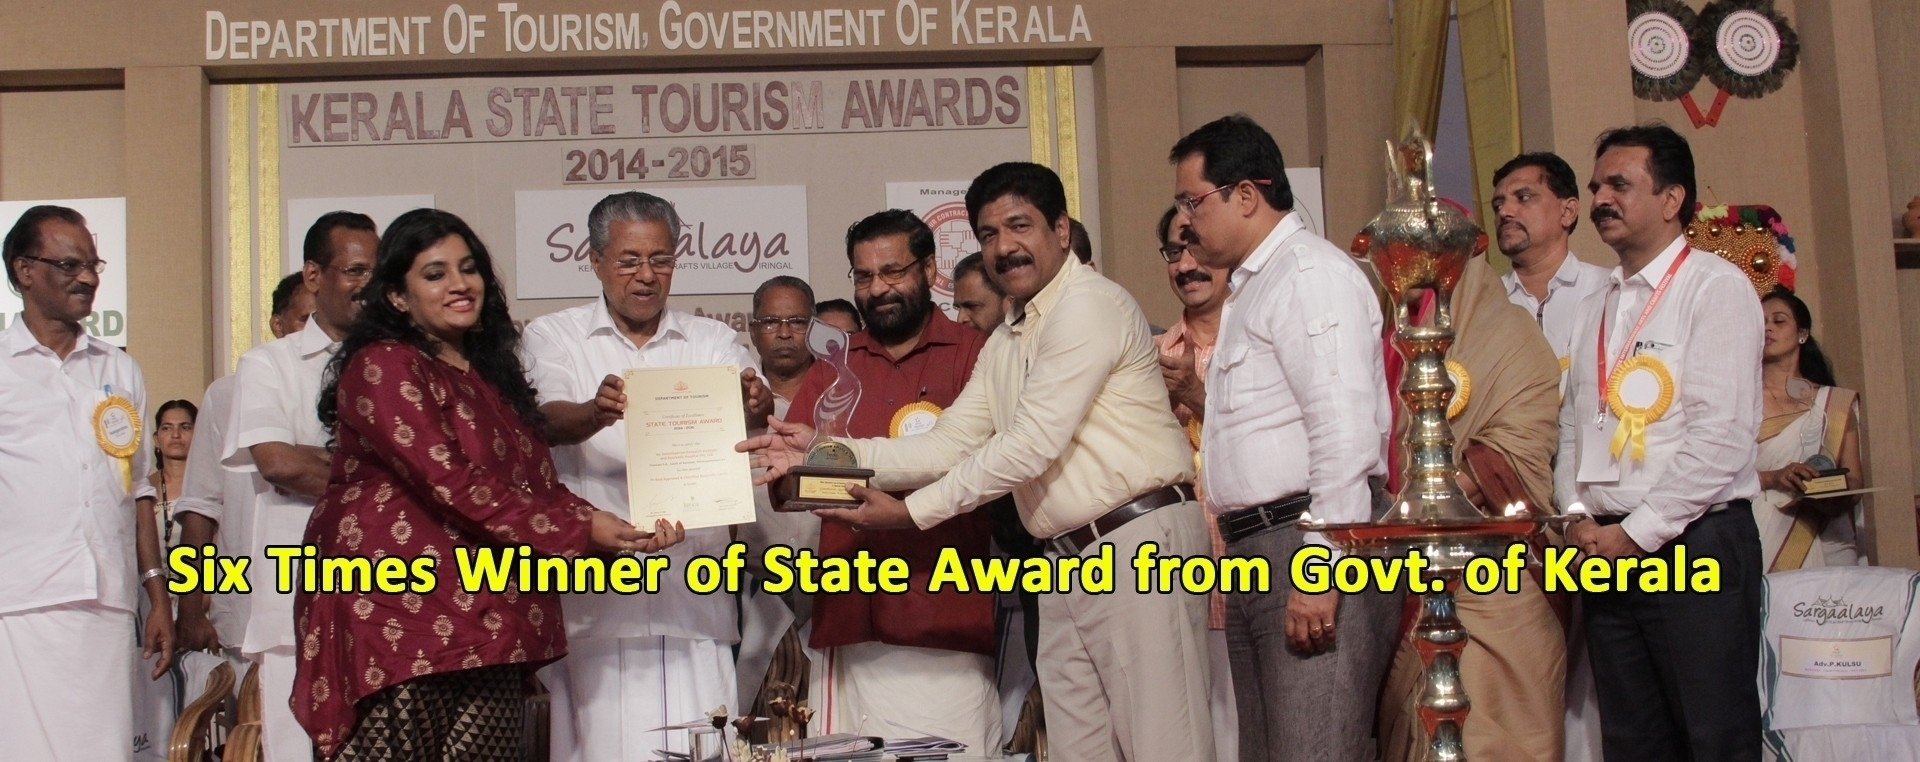 Award for the Best Ayurveda Centre in Kerala